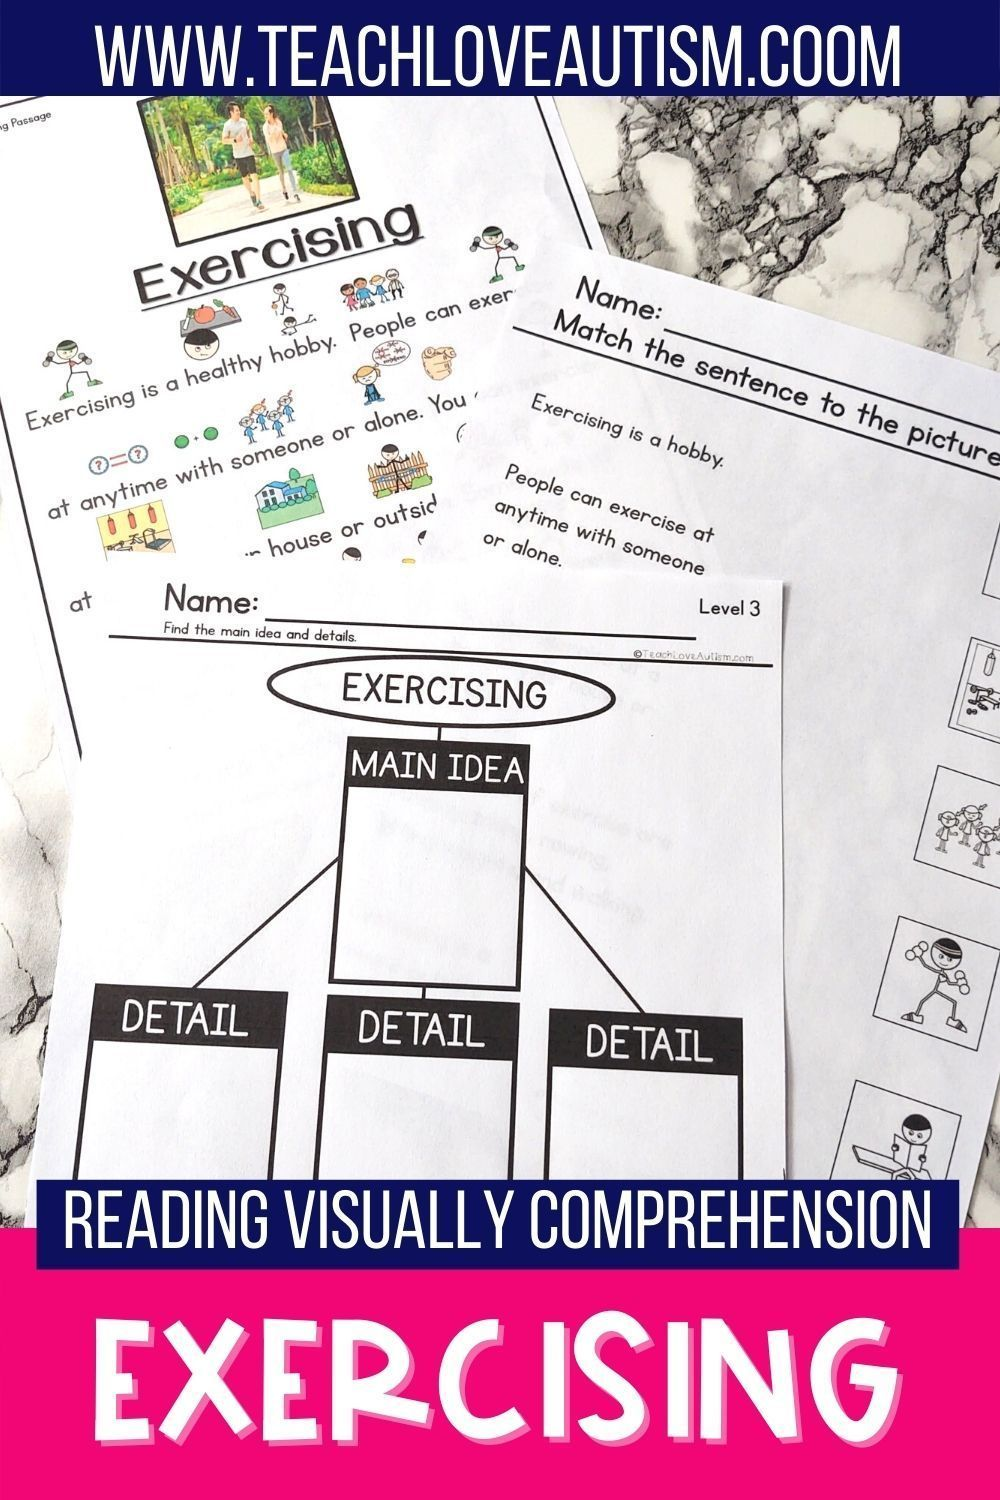 Exercising Reading Visually Comprehension Shop Teach Love Autism In 2021 Special Education Reading Reading Comprehension Activities Special Education Students [ 1500 x 1000 Pixel ]